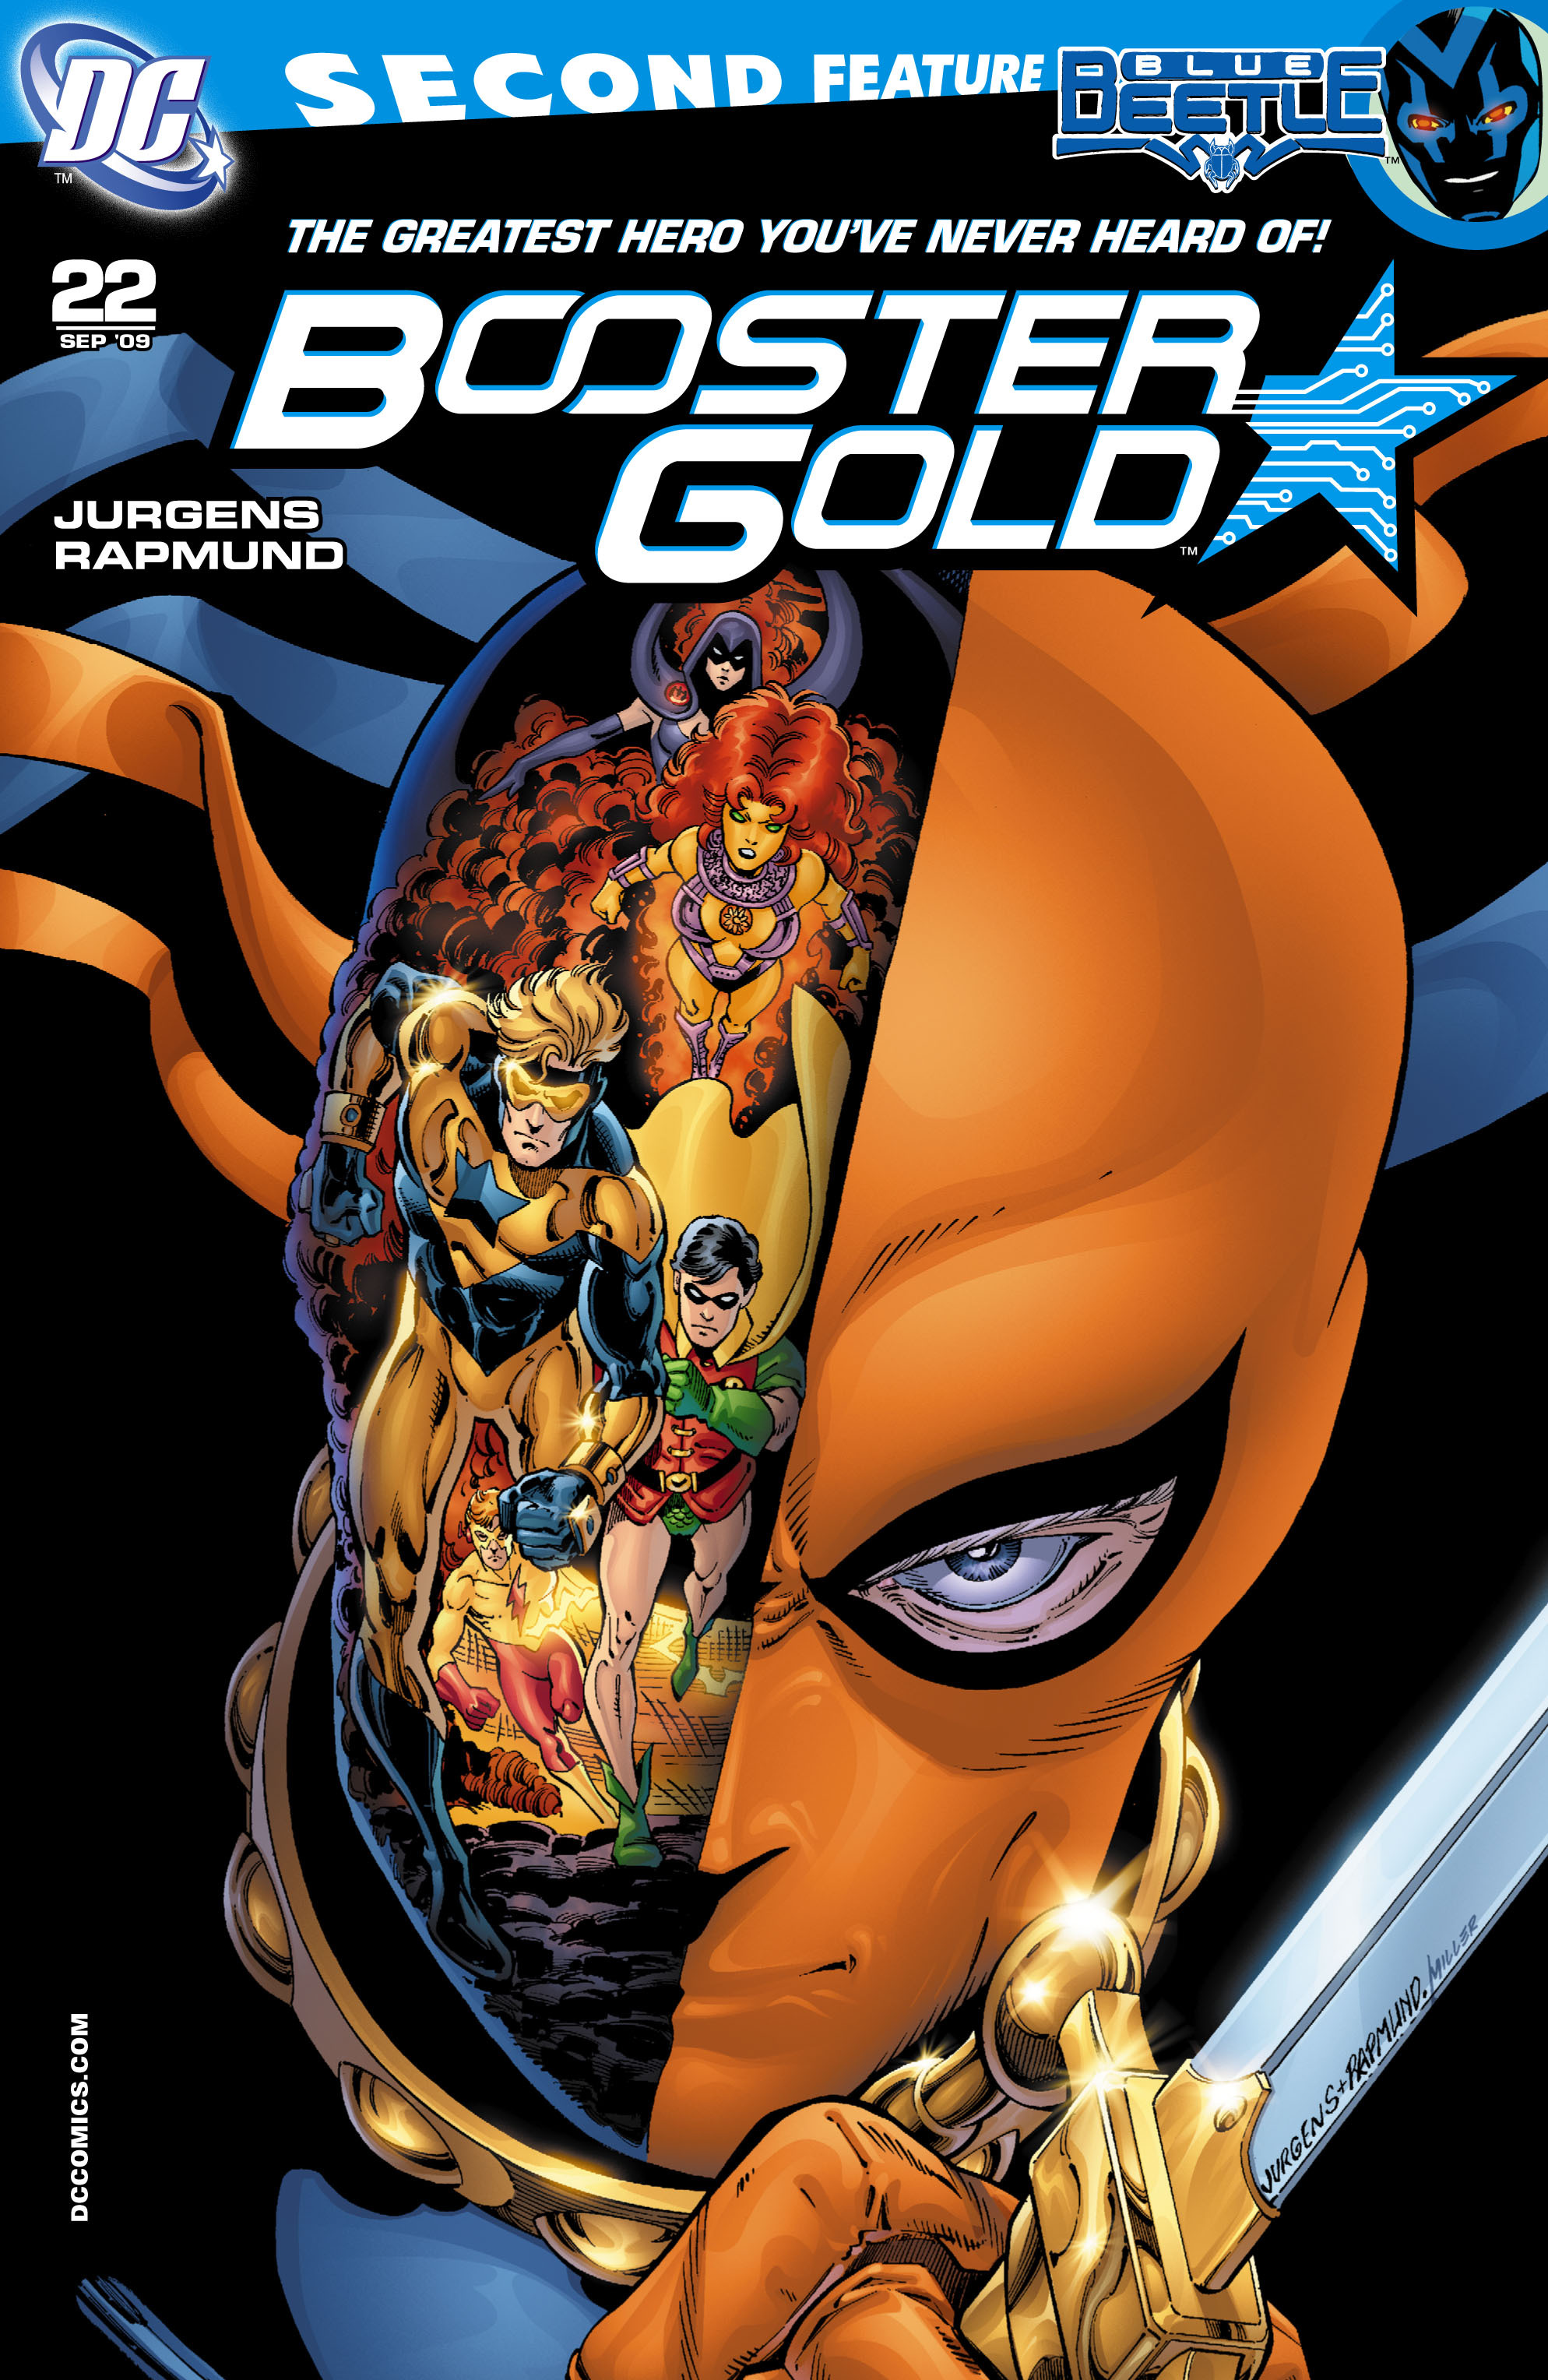 Booster Gold 2007 Issue 22